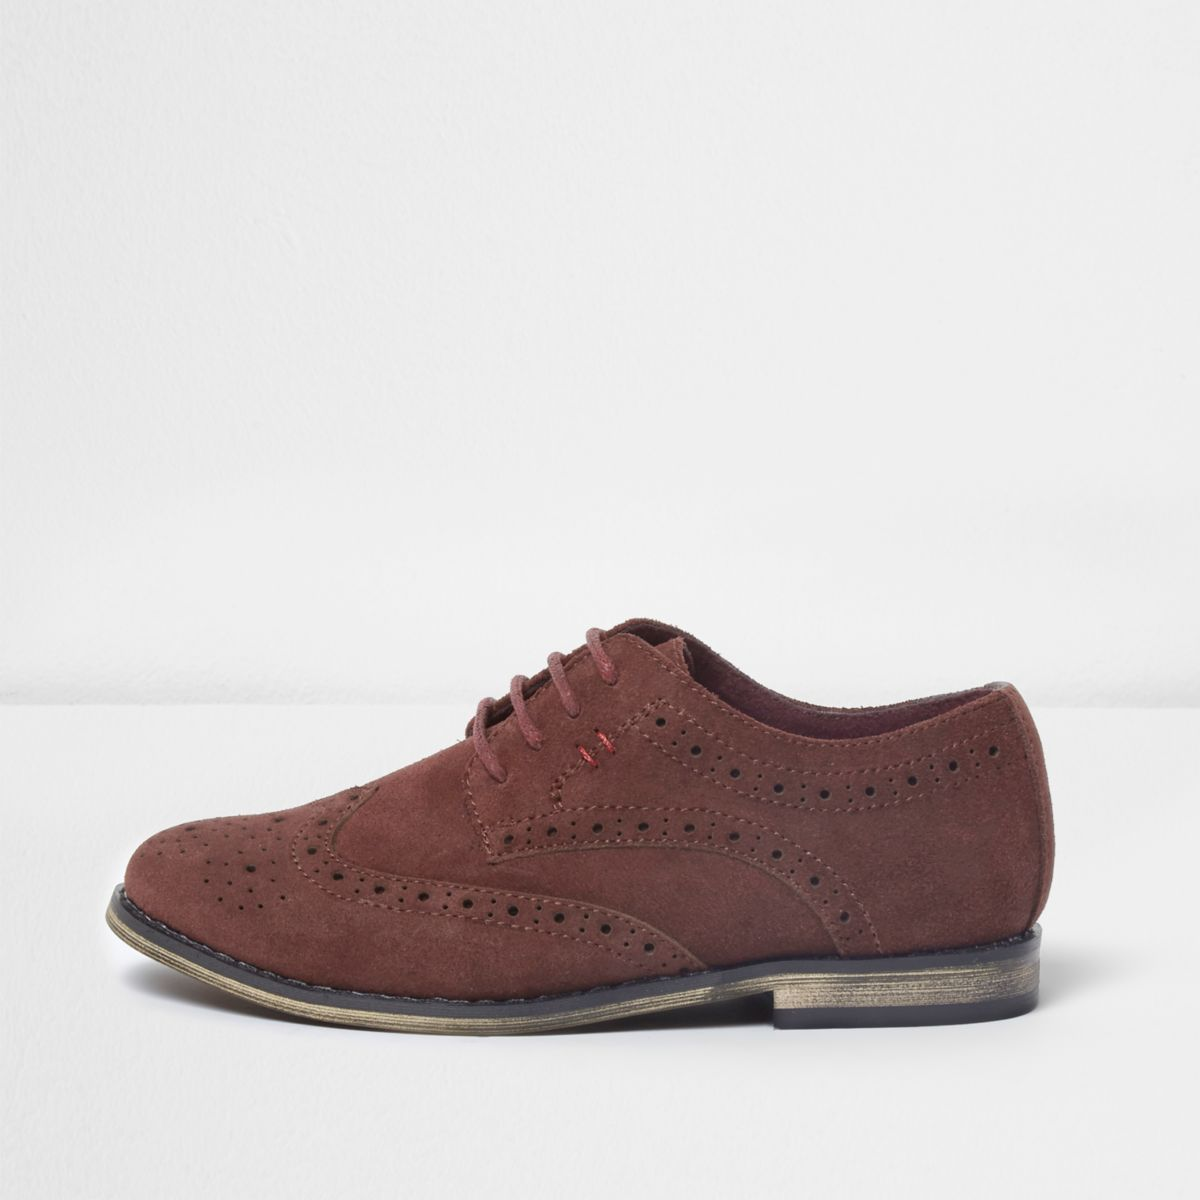 Boys dark red suede brogues